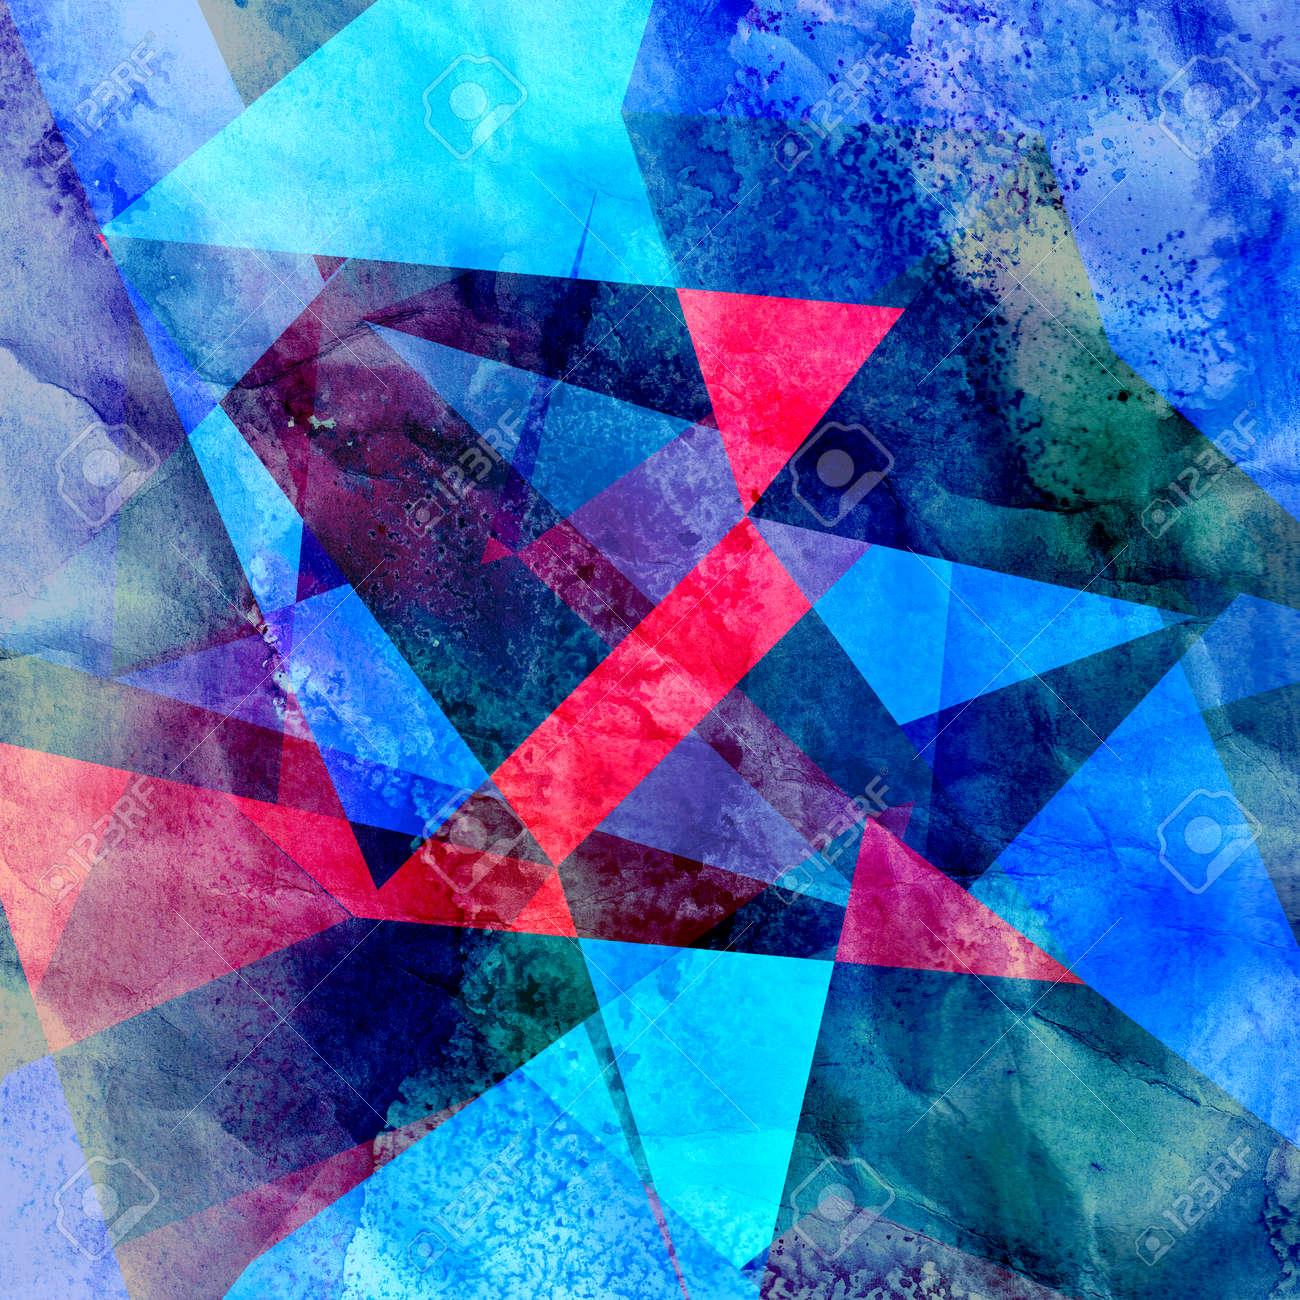 Abstract geometric watercolor retro background - 166486353